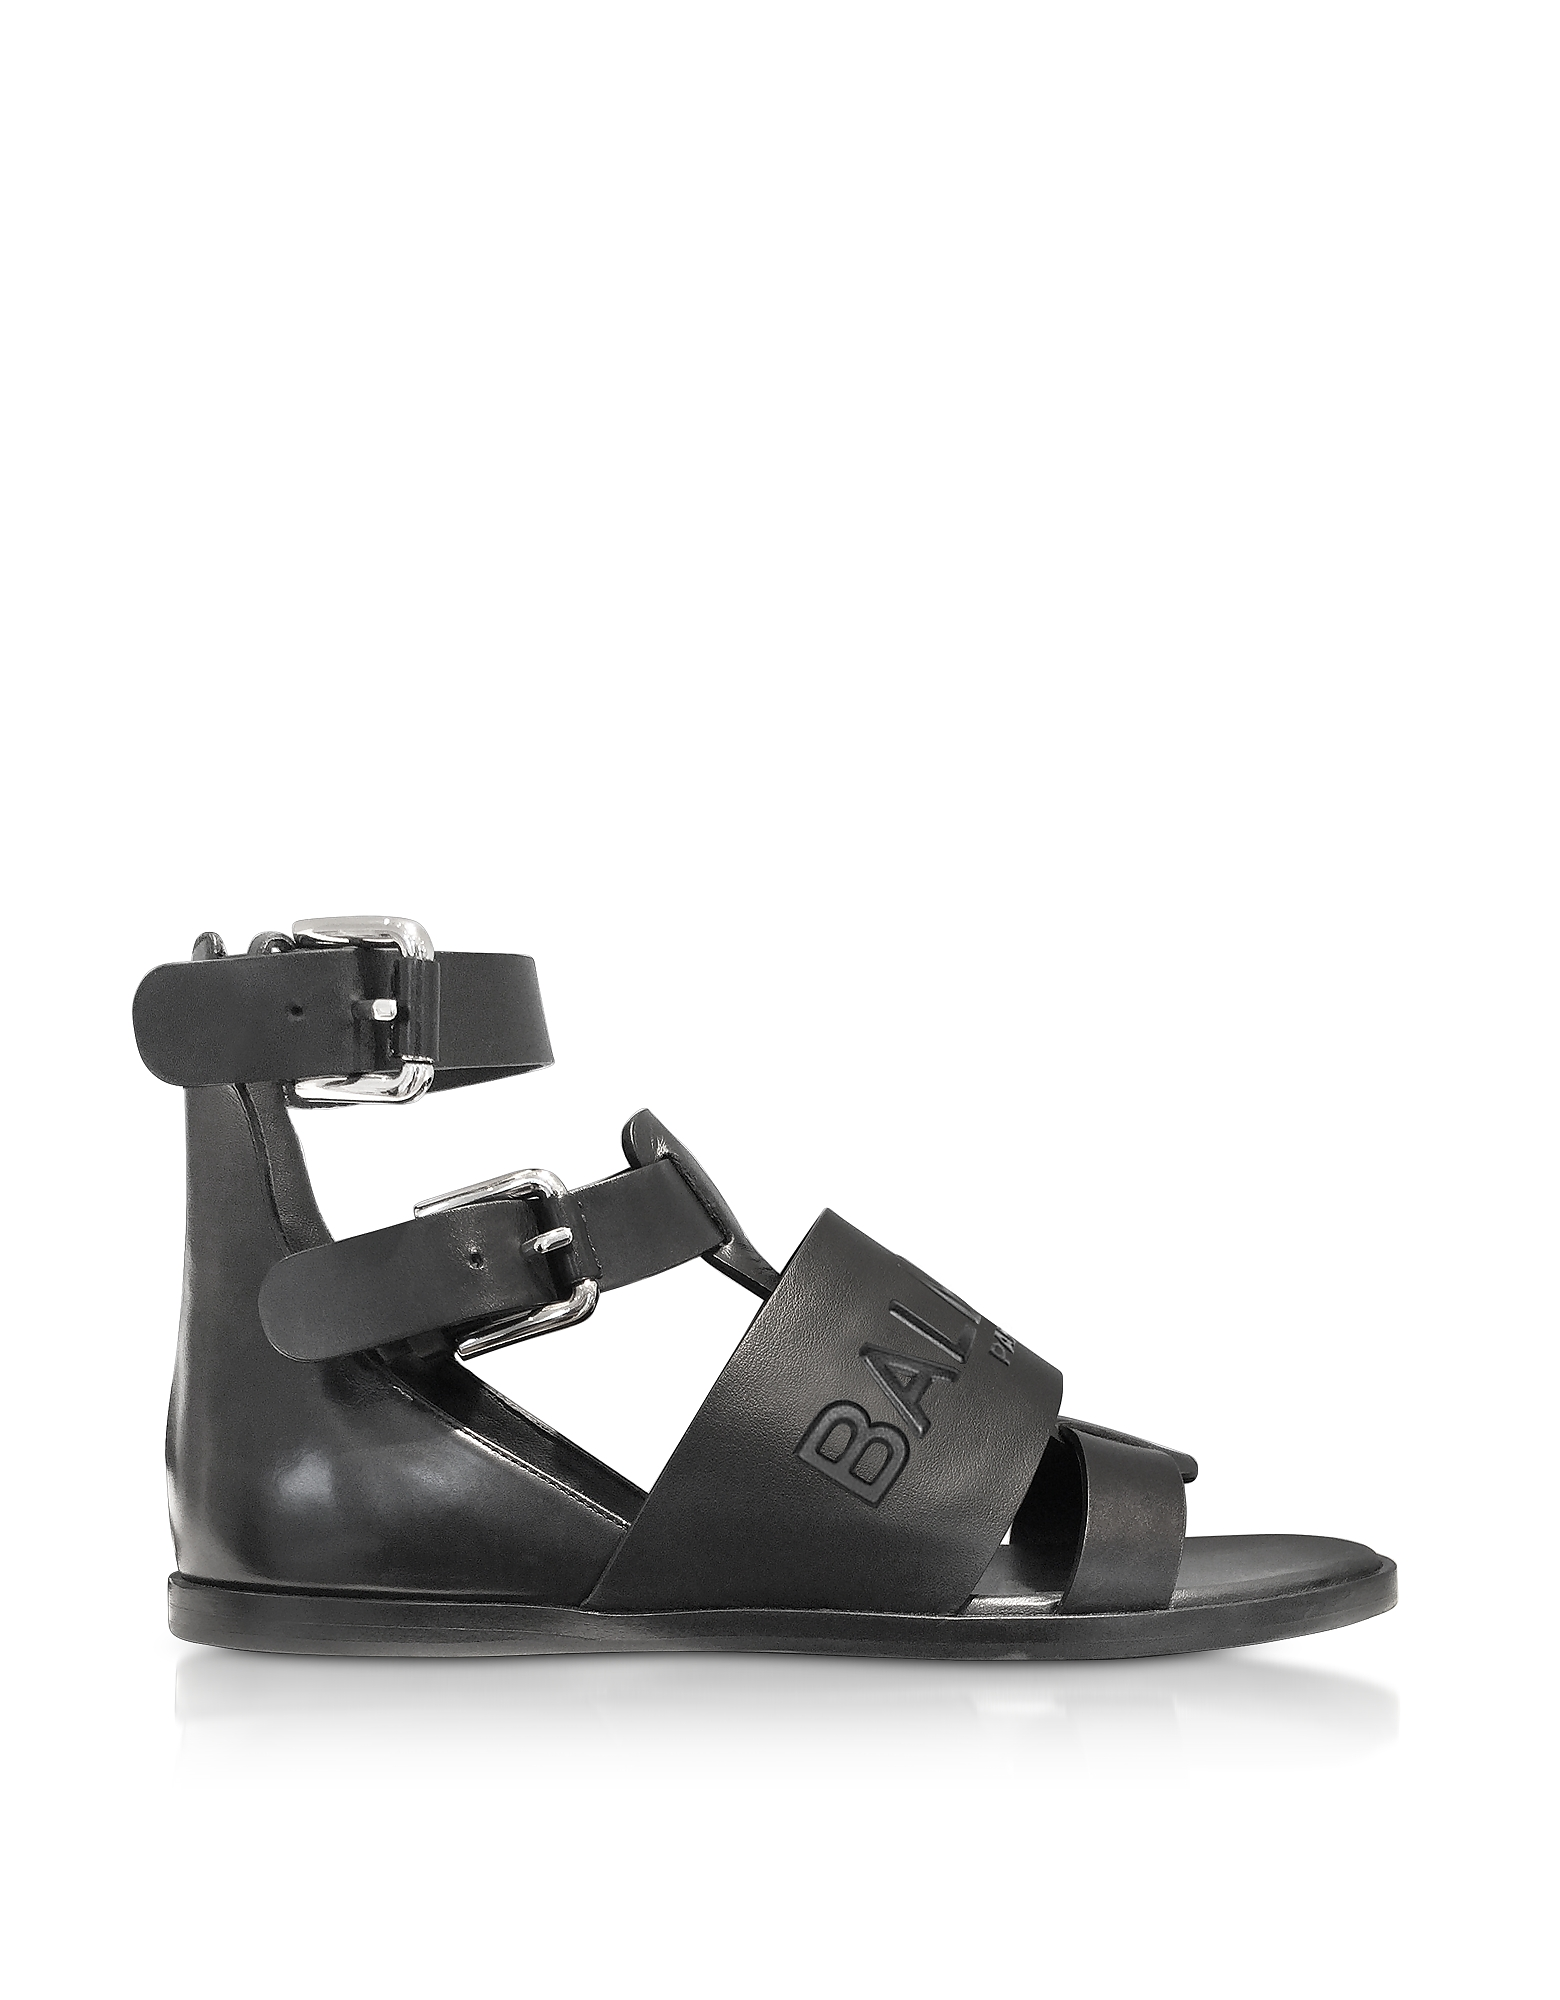 Balmain Shoes, Black Leather Clothilde Flat Sandals